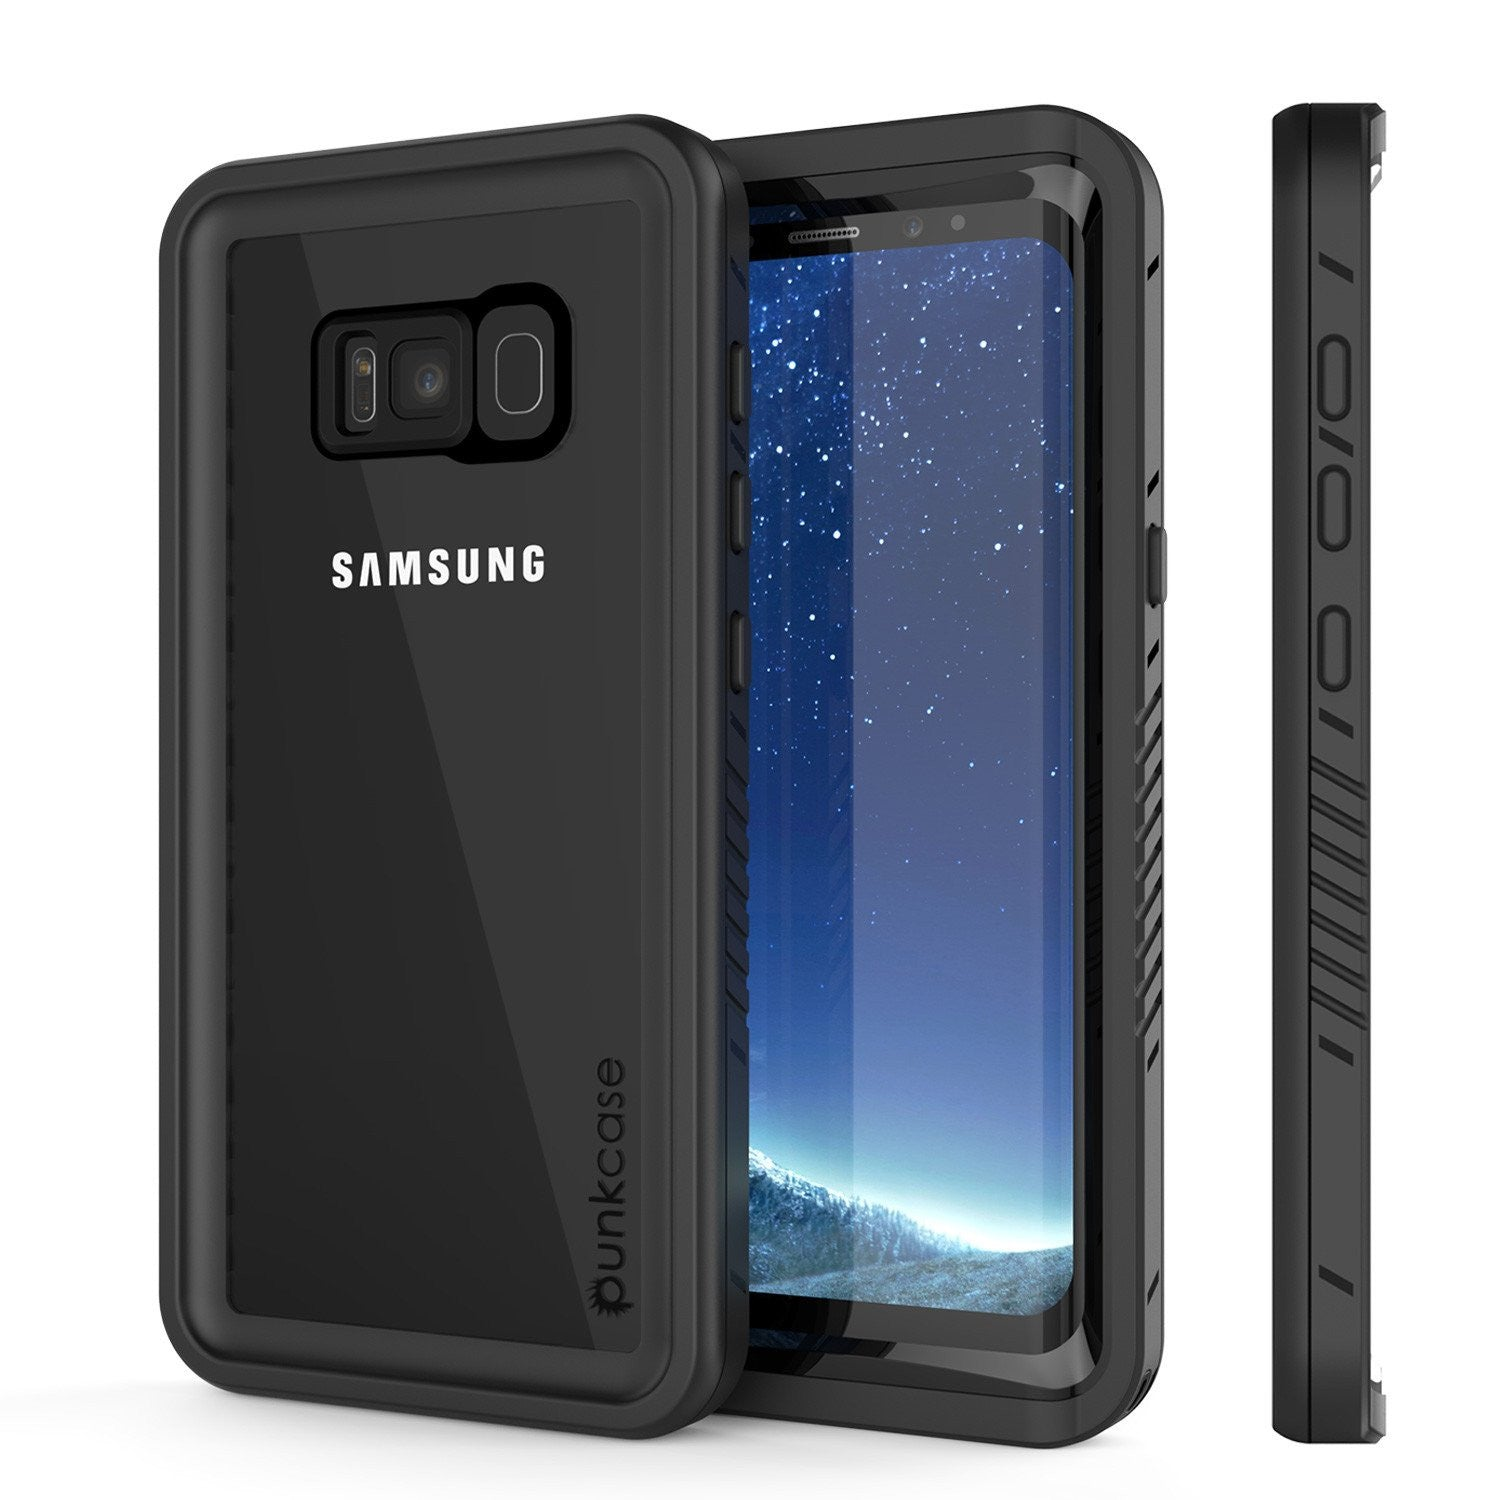 Galaxy S8 Plus Waterproof Case, Punkcase [Extreme Series] [Slim Fit] [IP68 Certified] [Shockproof] [Snowproof] [Dirproof] Armor Cover [Black]